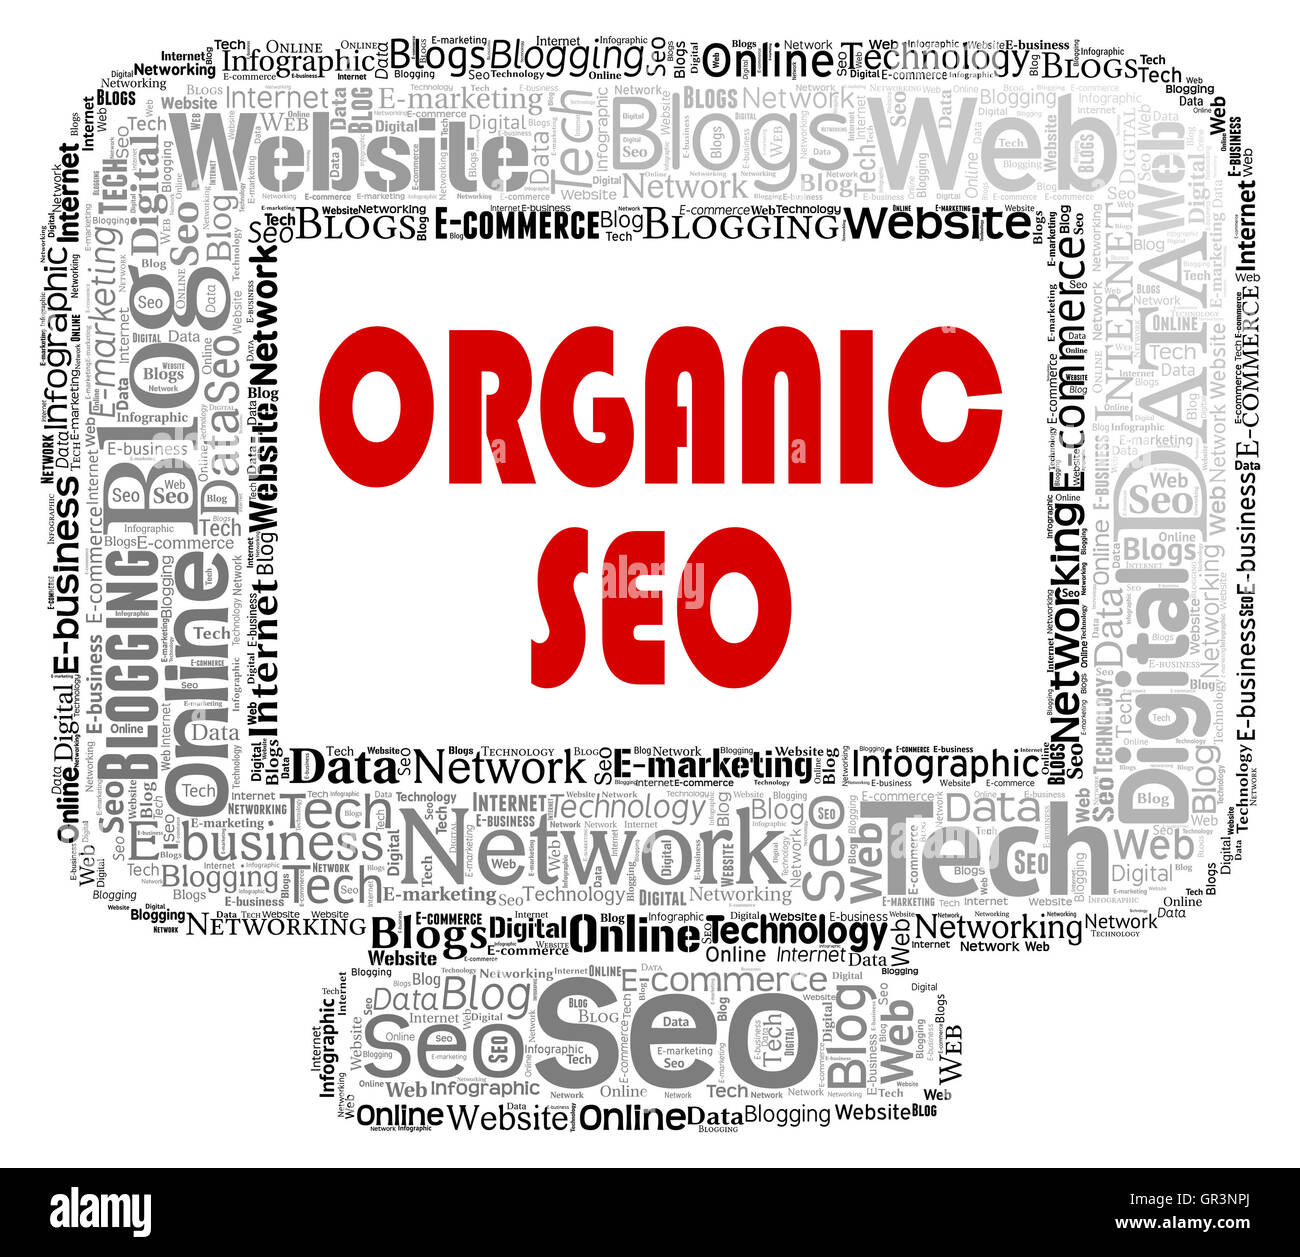 Organic Seo Showing Search Engines And Optimizing - Stock Image